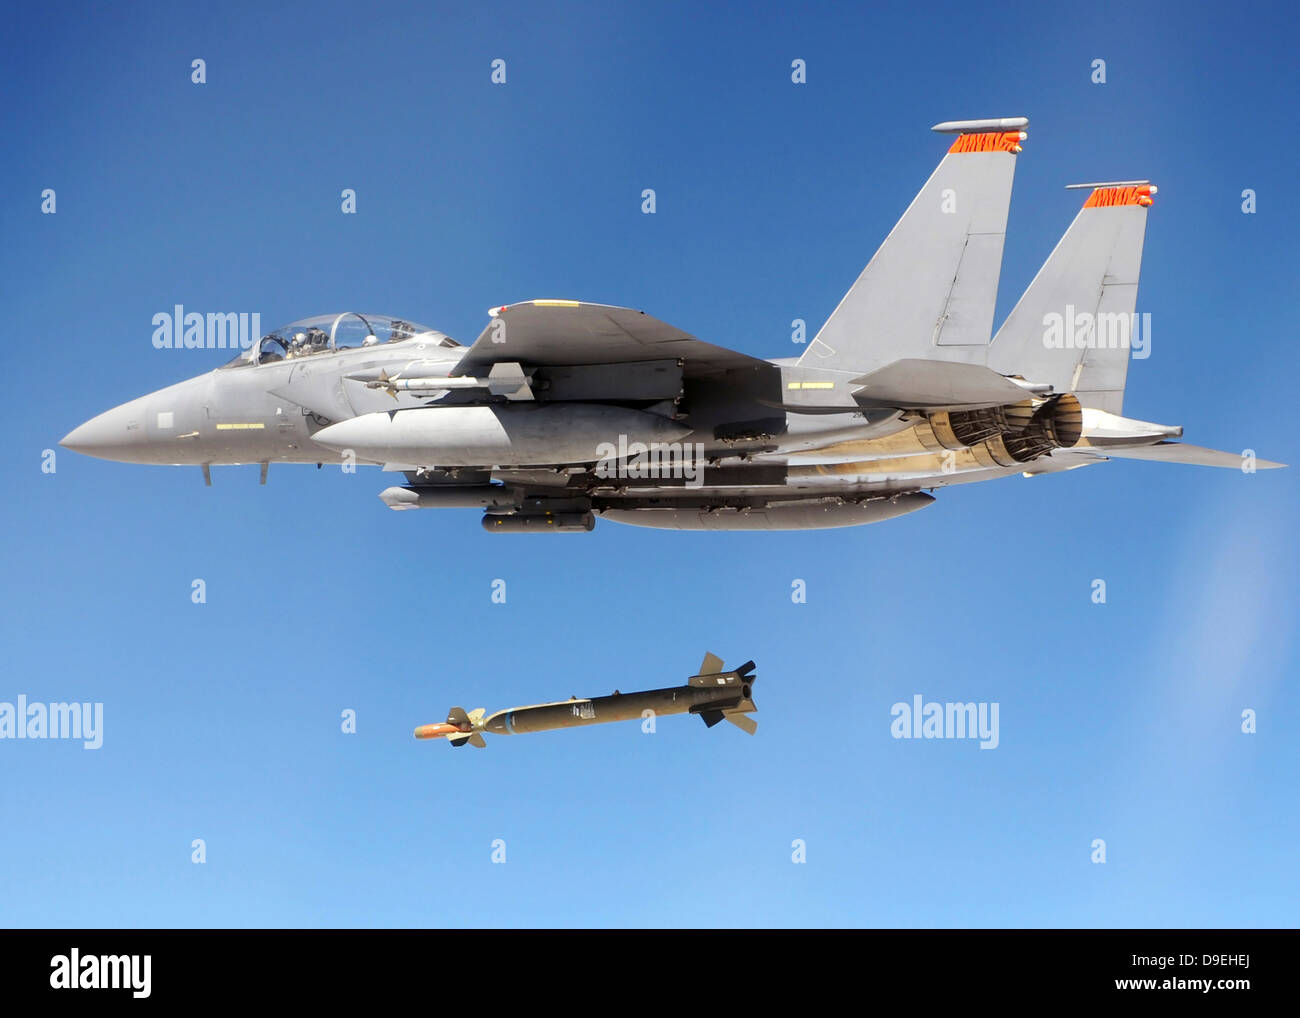 An F-15E Strike Eagle drops a GBU-28 bomb during a Combat Hammer mission - Stock Image